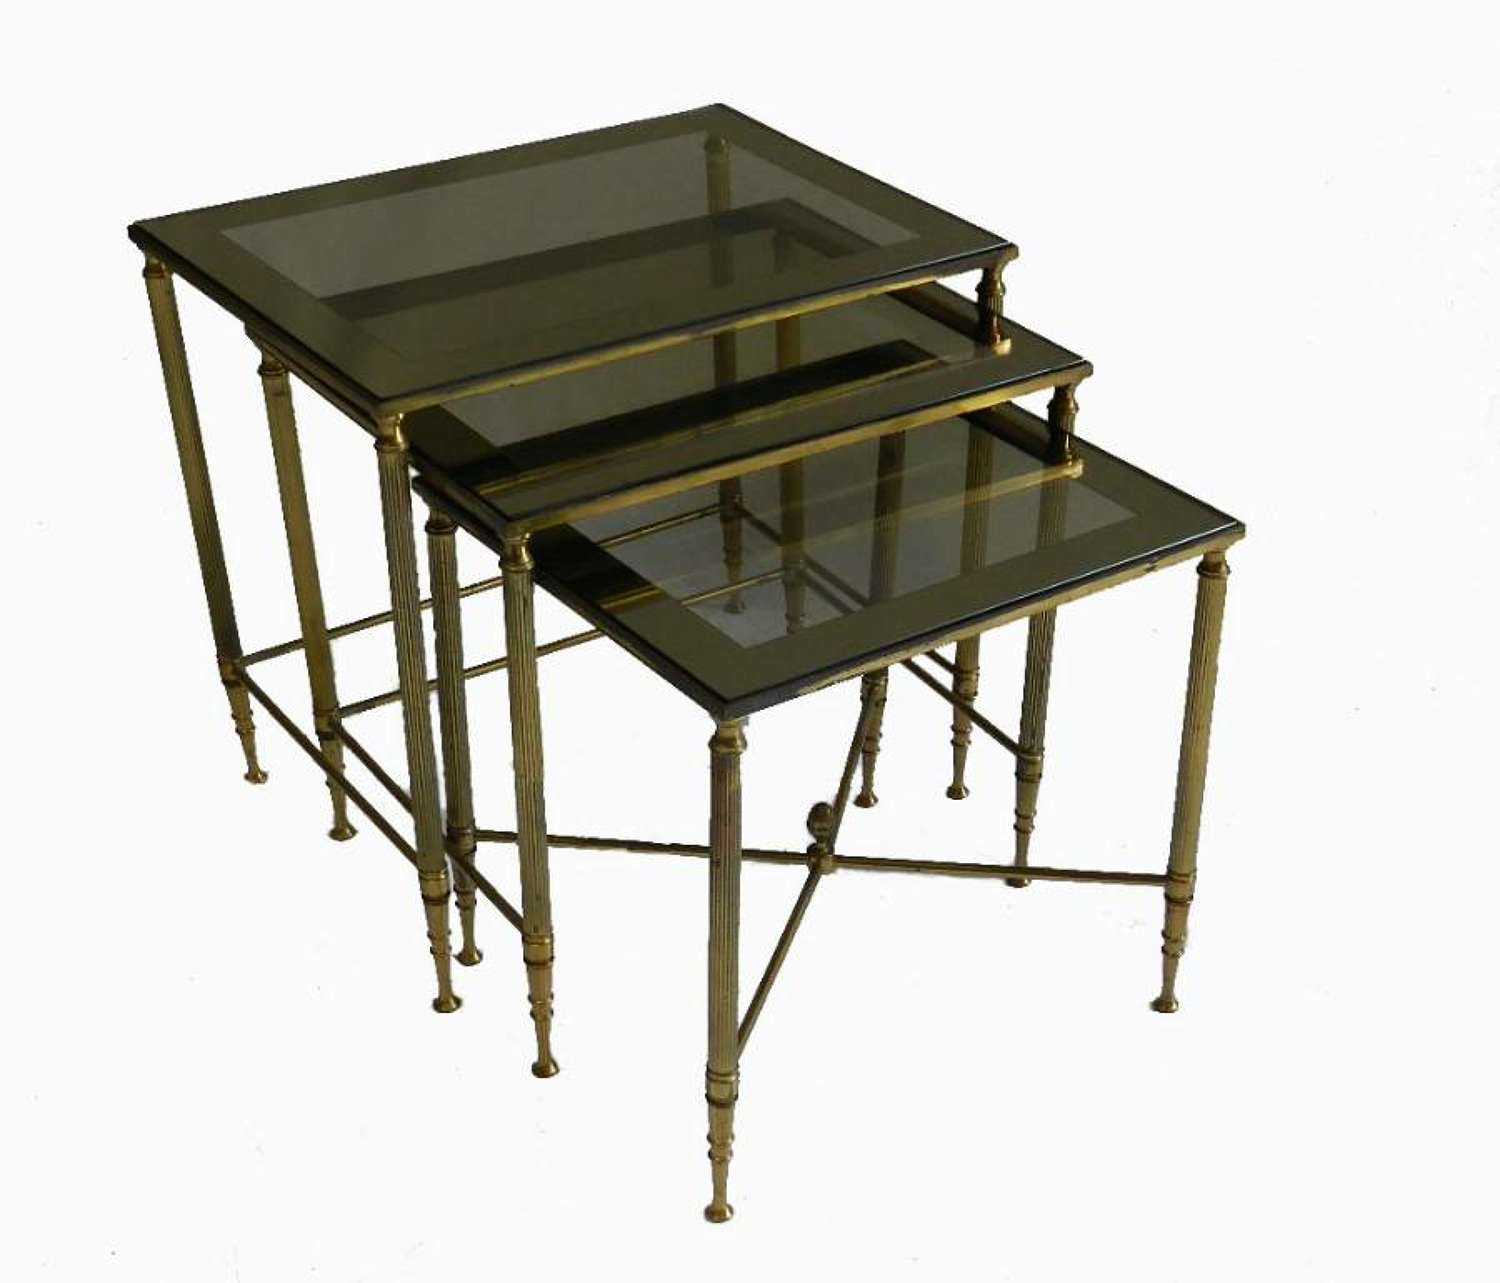 Nest of 3 French Tables Brass and Mirrored Glass